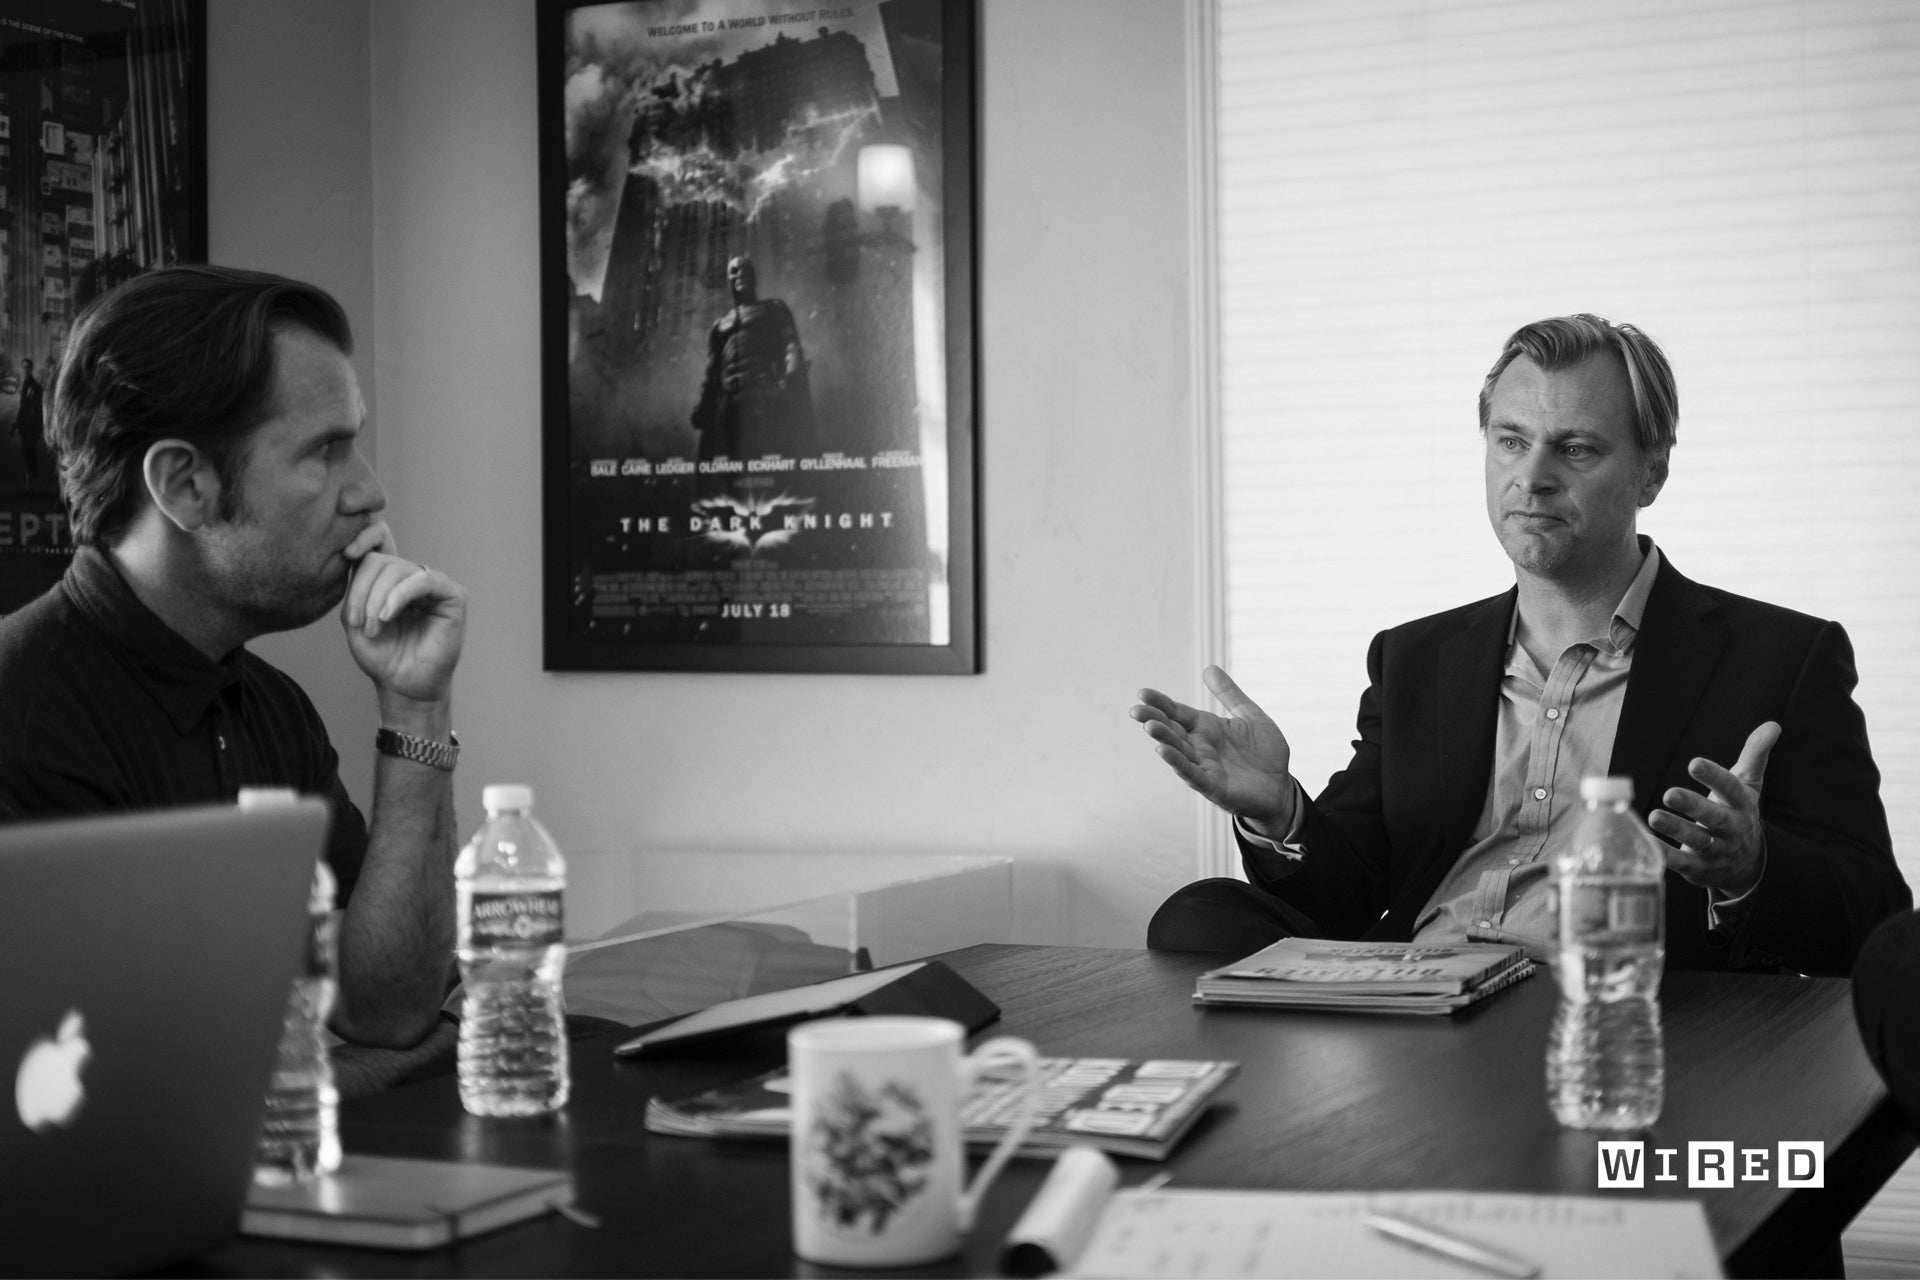 Christopher Nolan To Guest Edit Wired